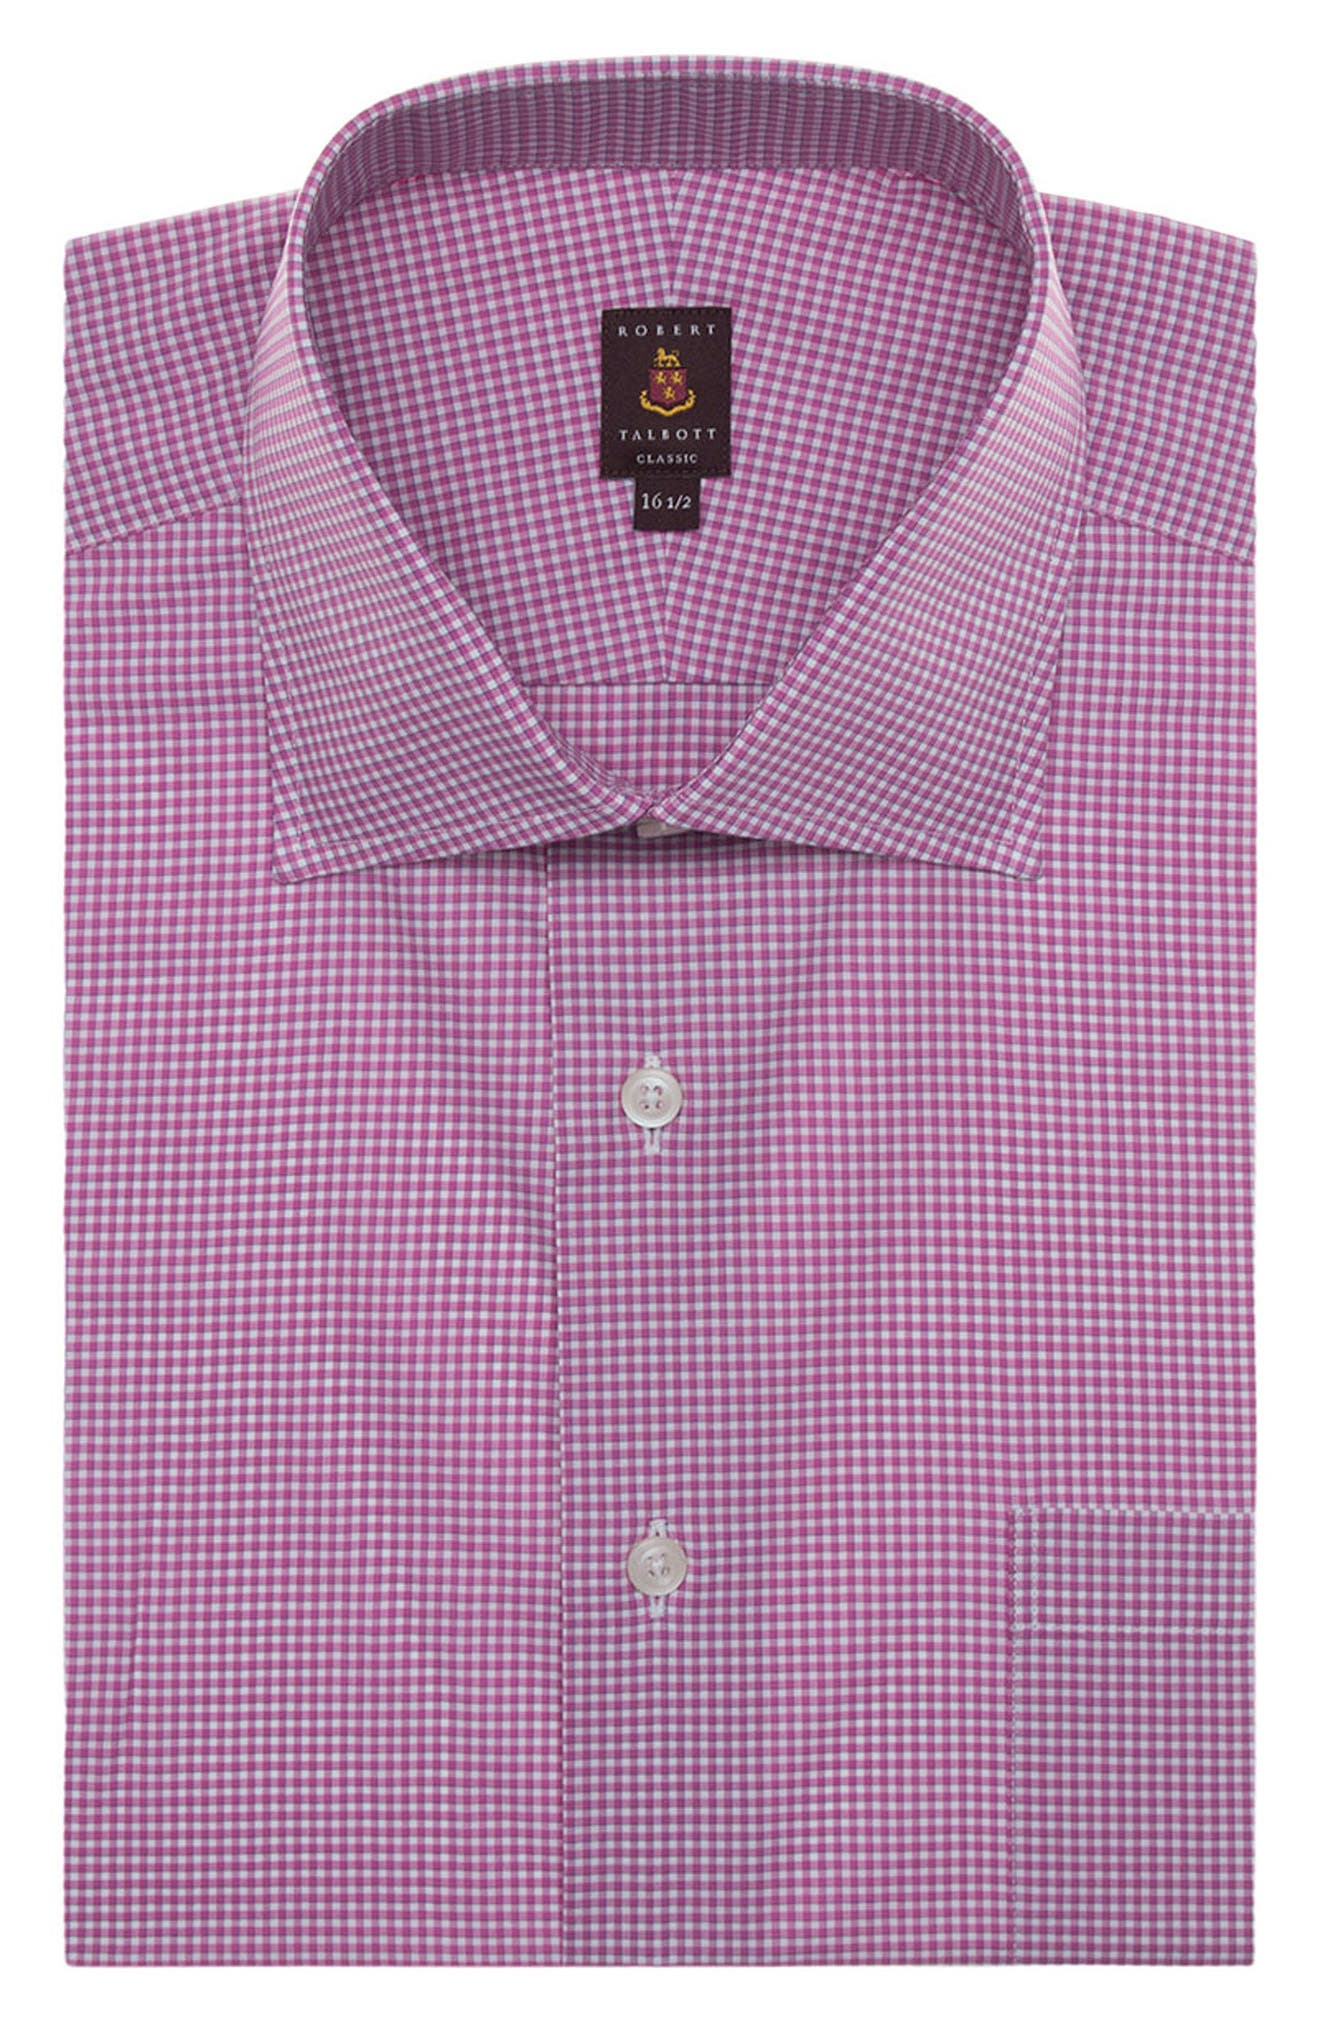 Tailored Fit Check Dress Shirt,                             Main thumbnail 1, color,                             Fuchsia